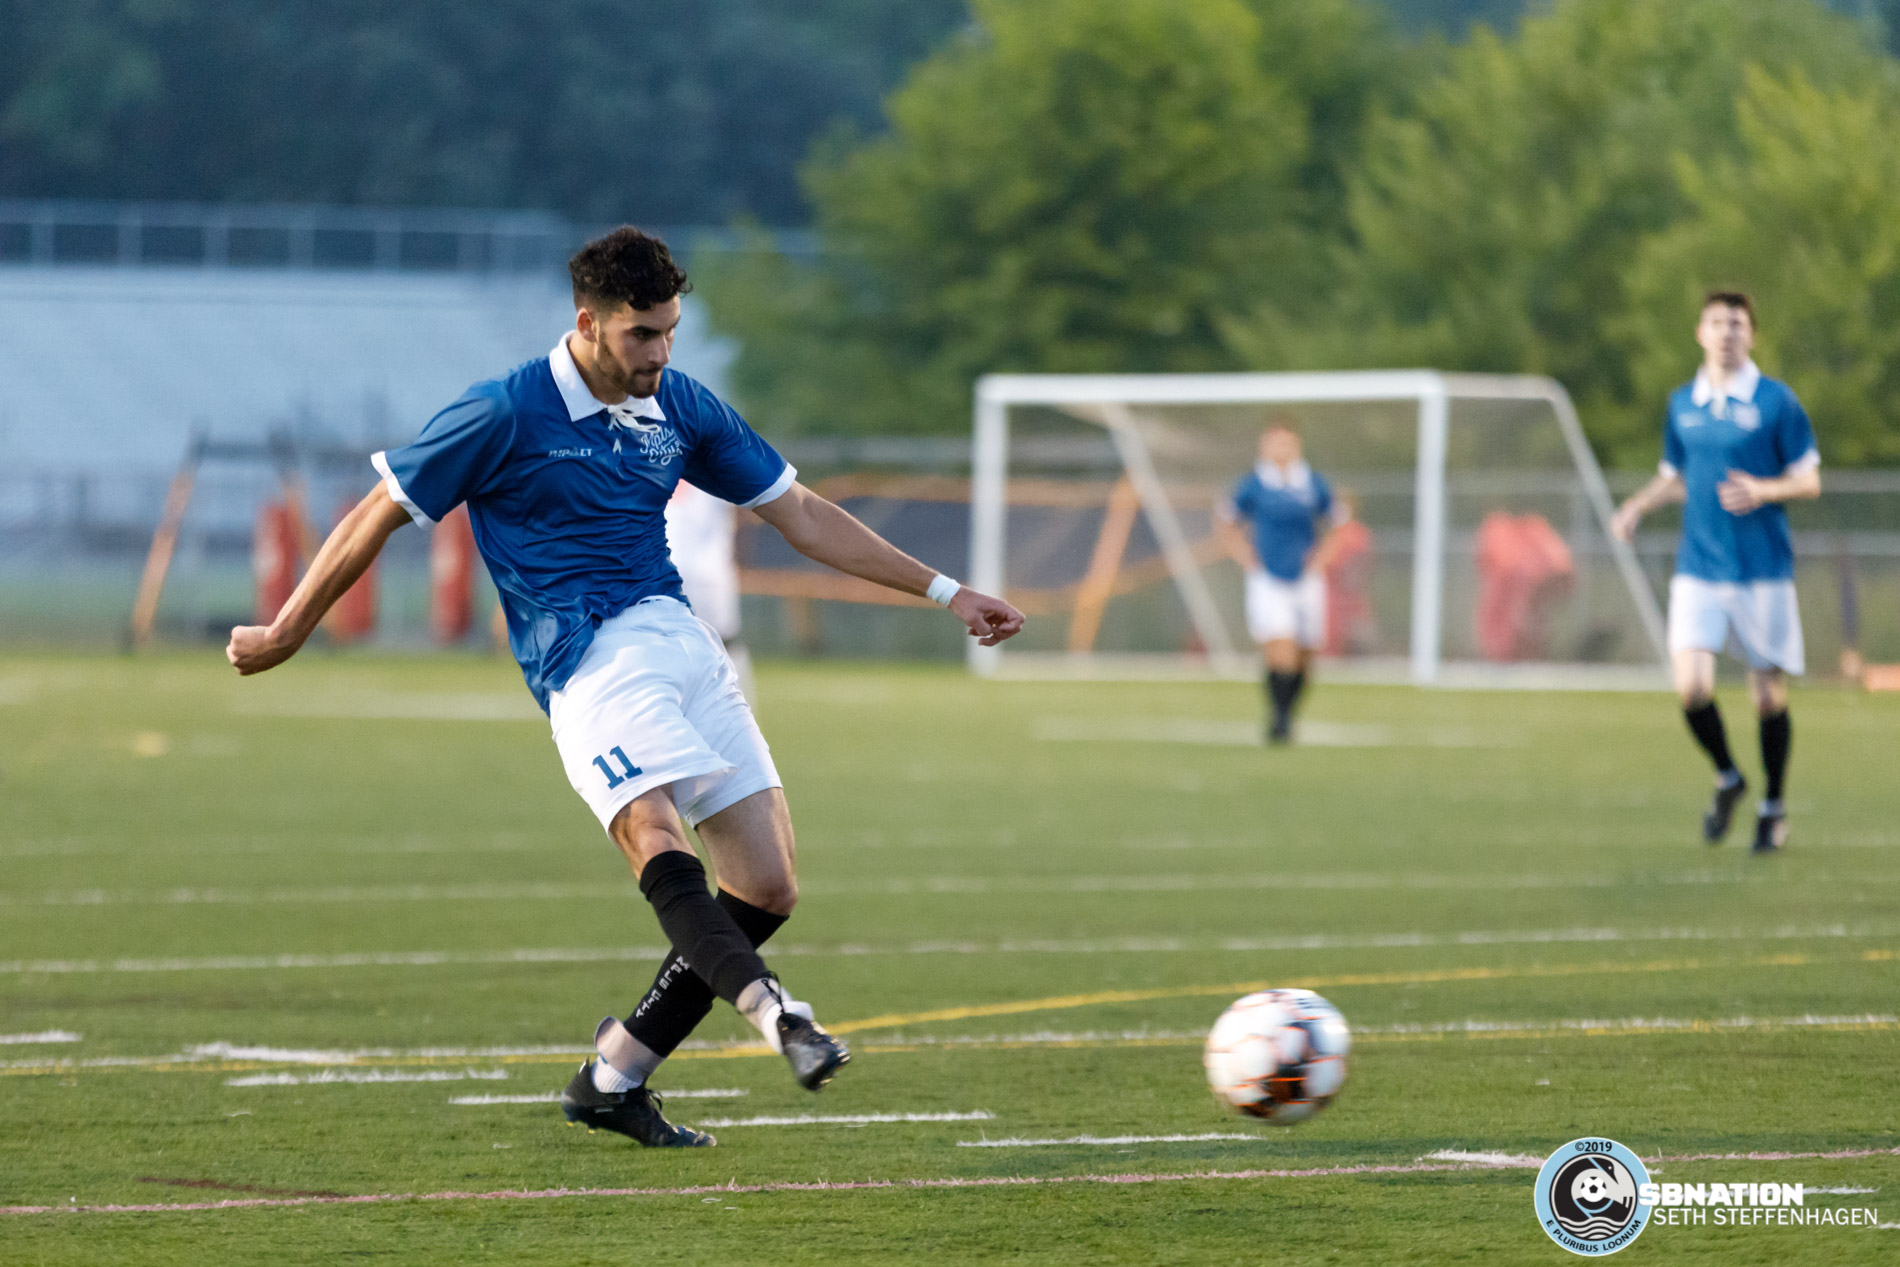 July 16, 2019 - St. Louis Park, Minnesota, United States - Minneapolis City SC midfielder Eli Goldman (11) scores the opening goal during the NPSL North playoff match against Med City FC at Benilde-St. Margaret's.